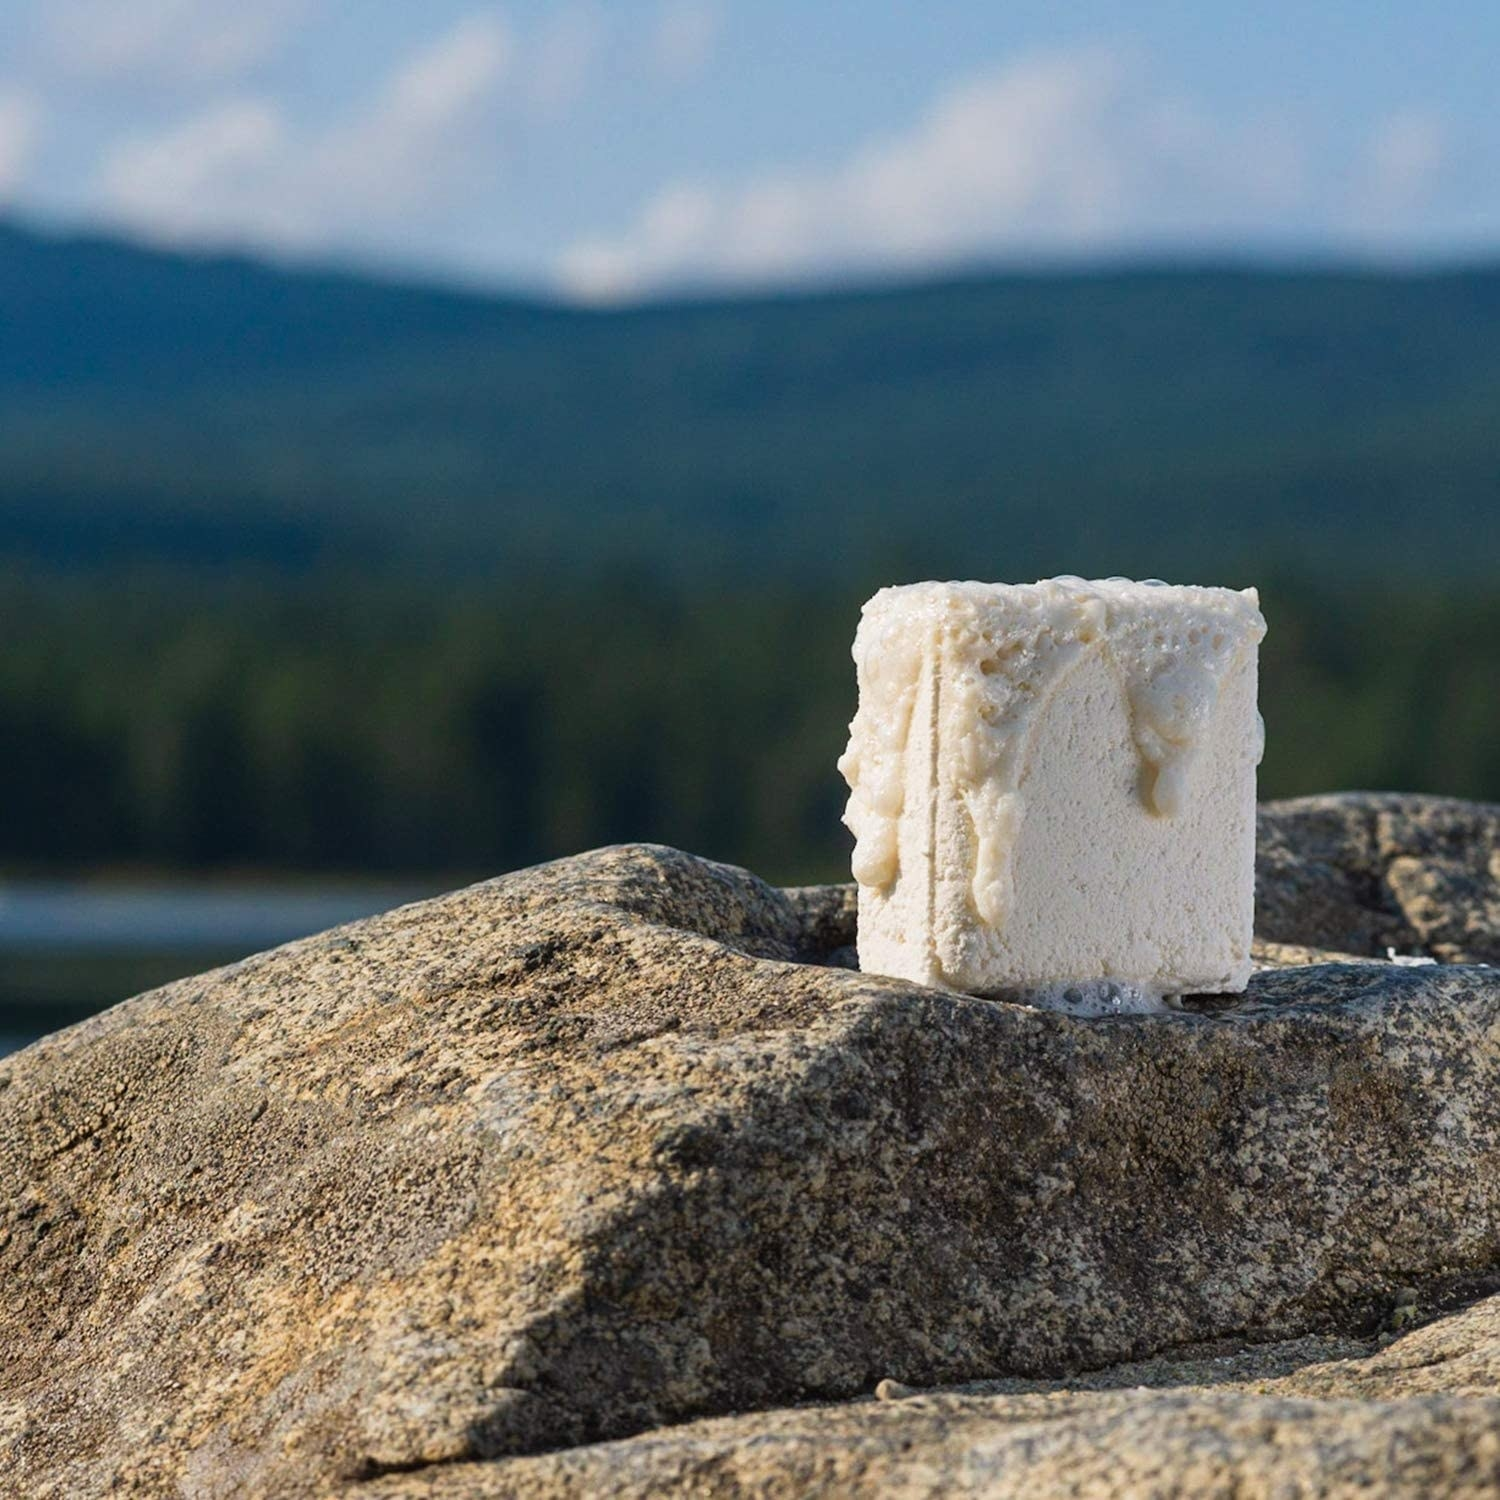 One of the shower steamers perched on a rock with mountains in the background